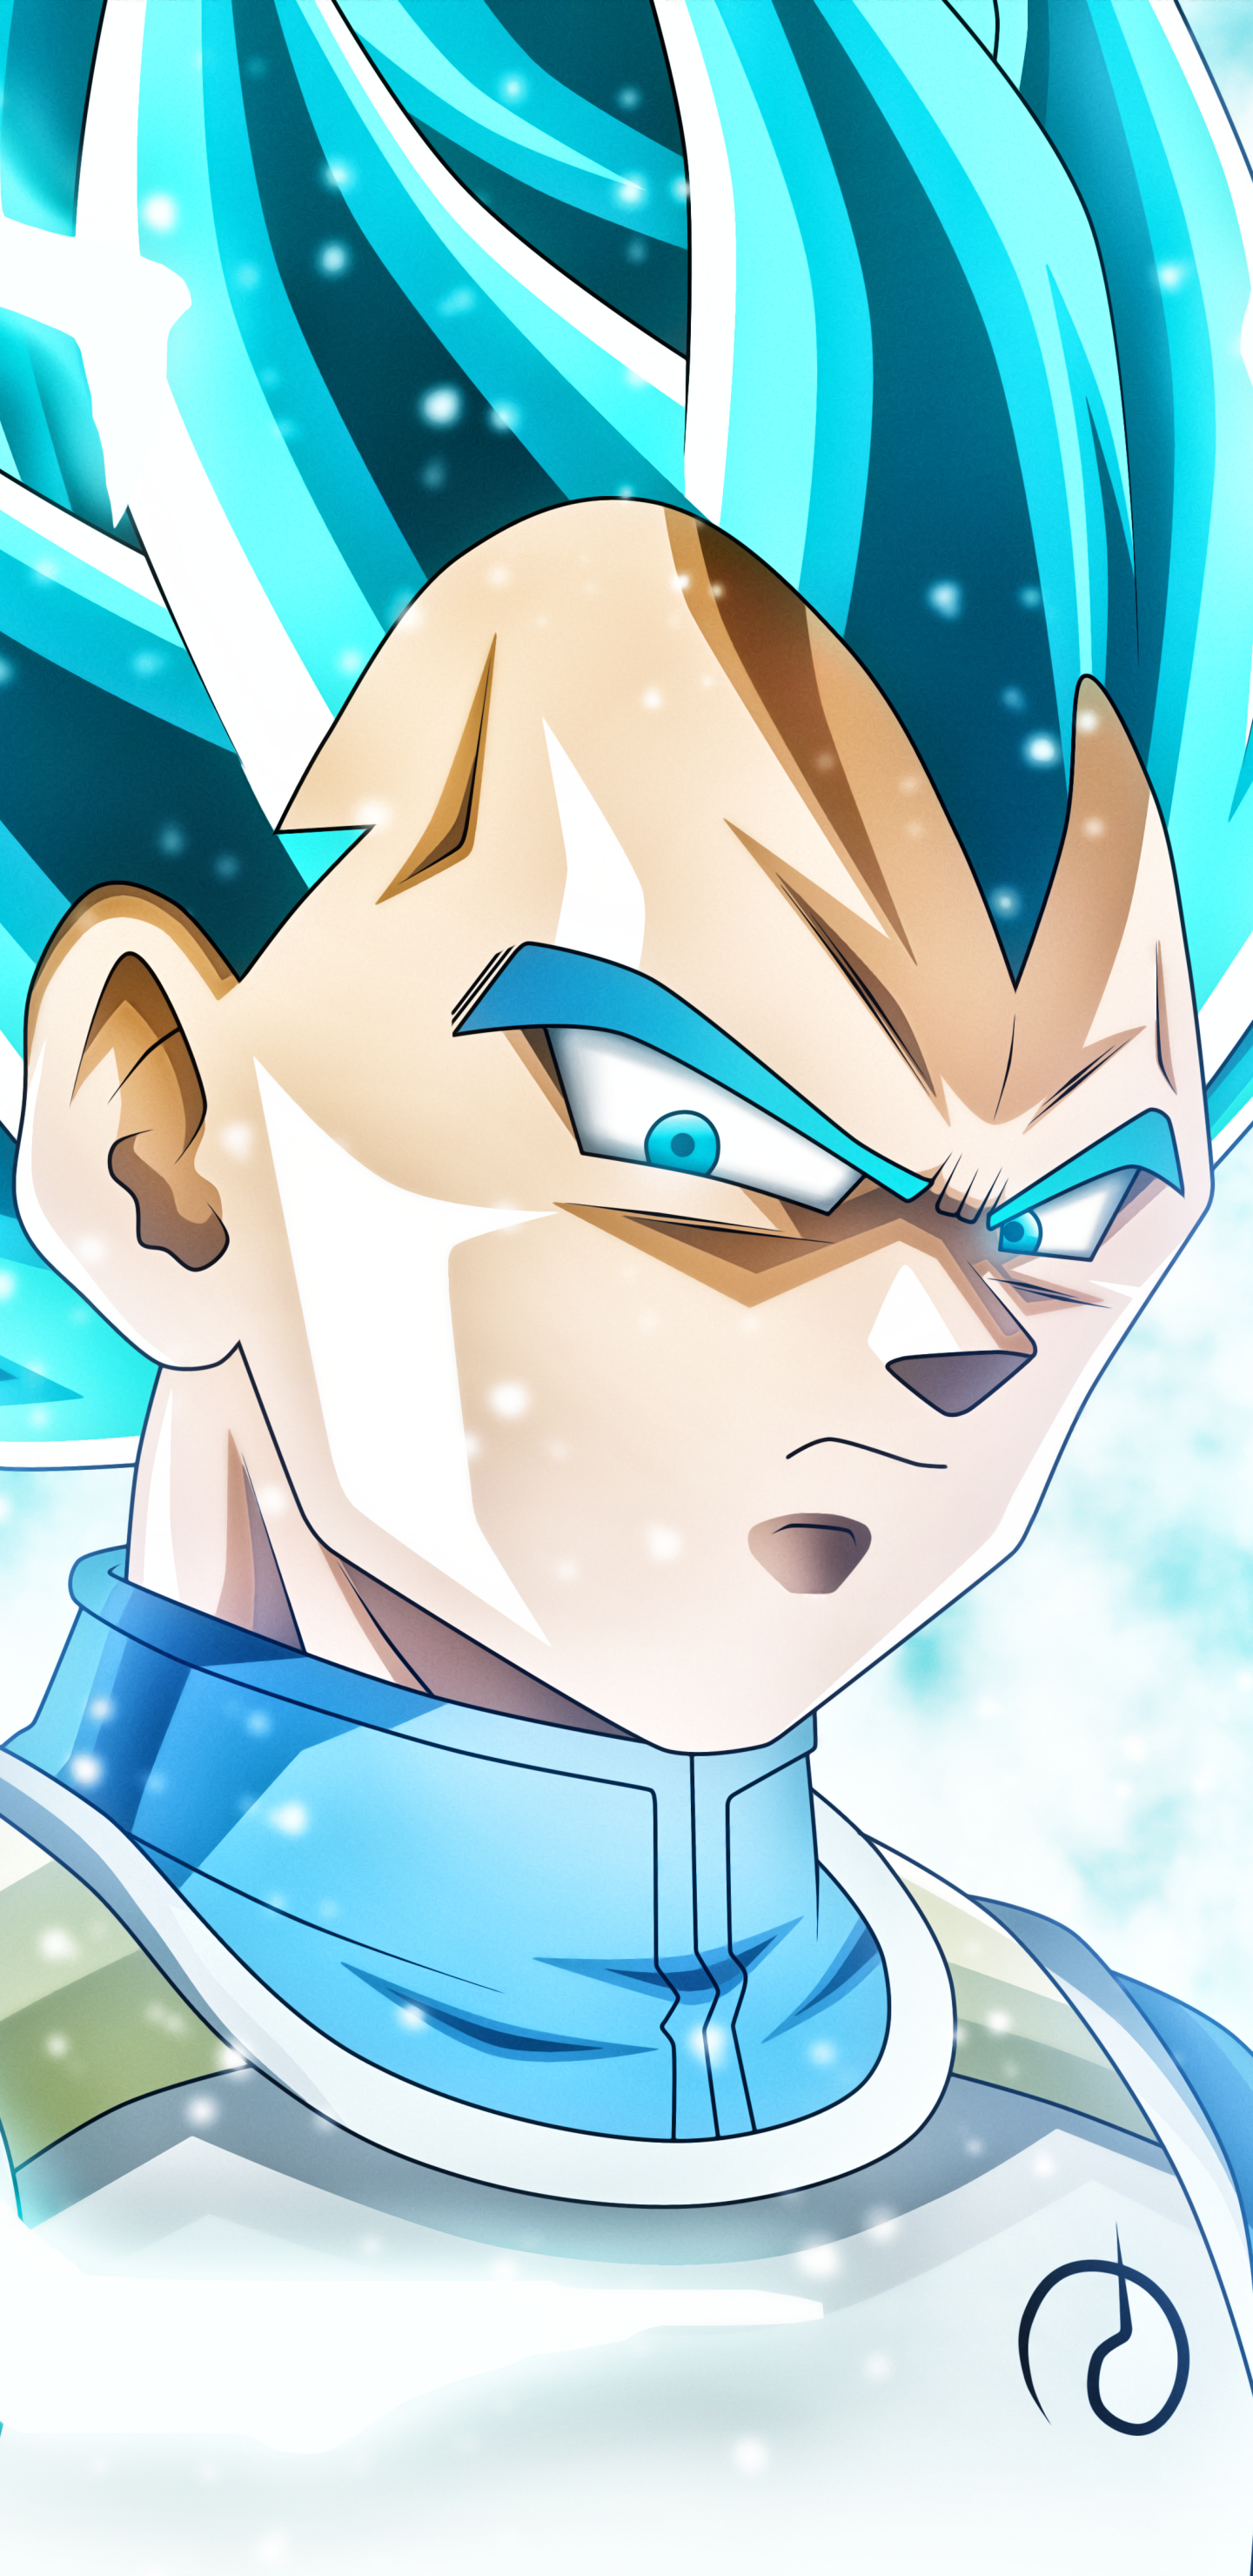 Download This Wallpaper Anime Dragon Ball Super 1440x2960 For All Your Phones And Tablets Anime Dragon Ball Super Anime Dragon Ball Dragon Ball Wallpapers